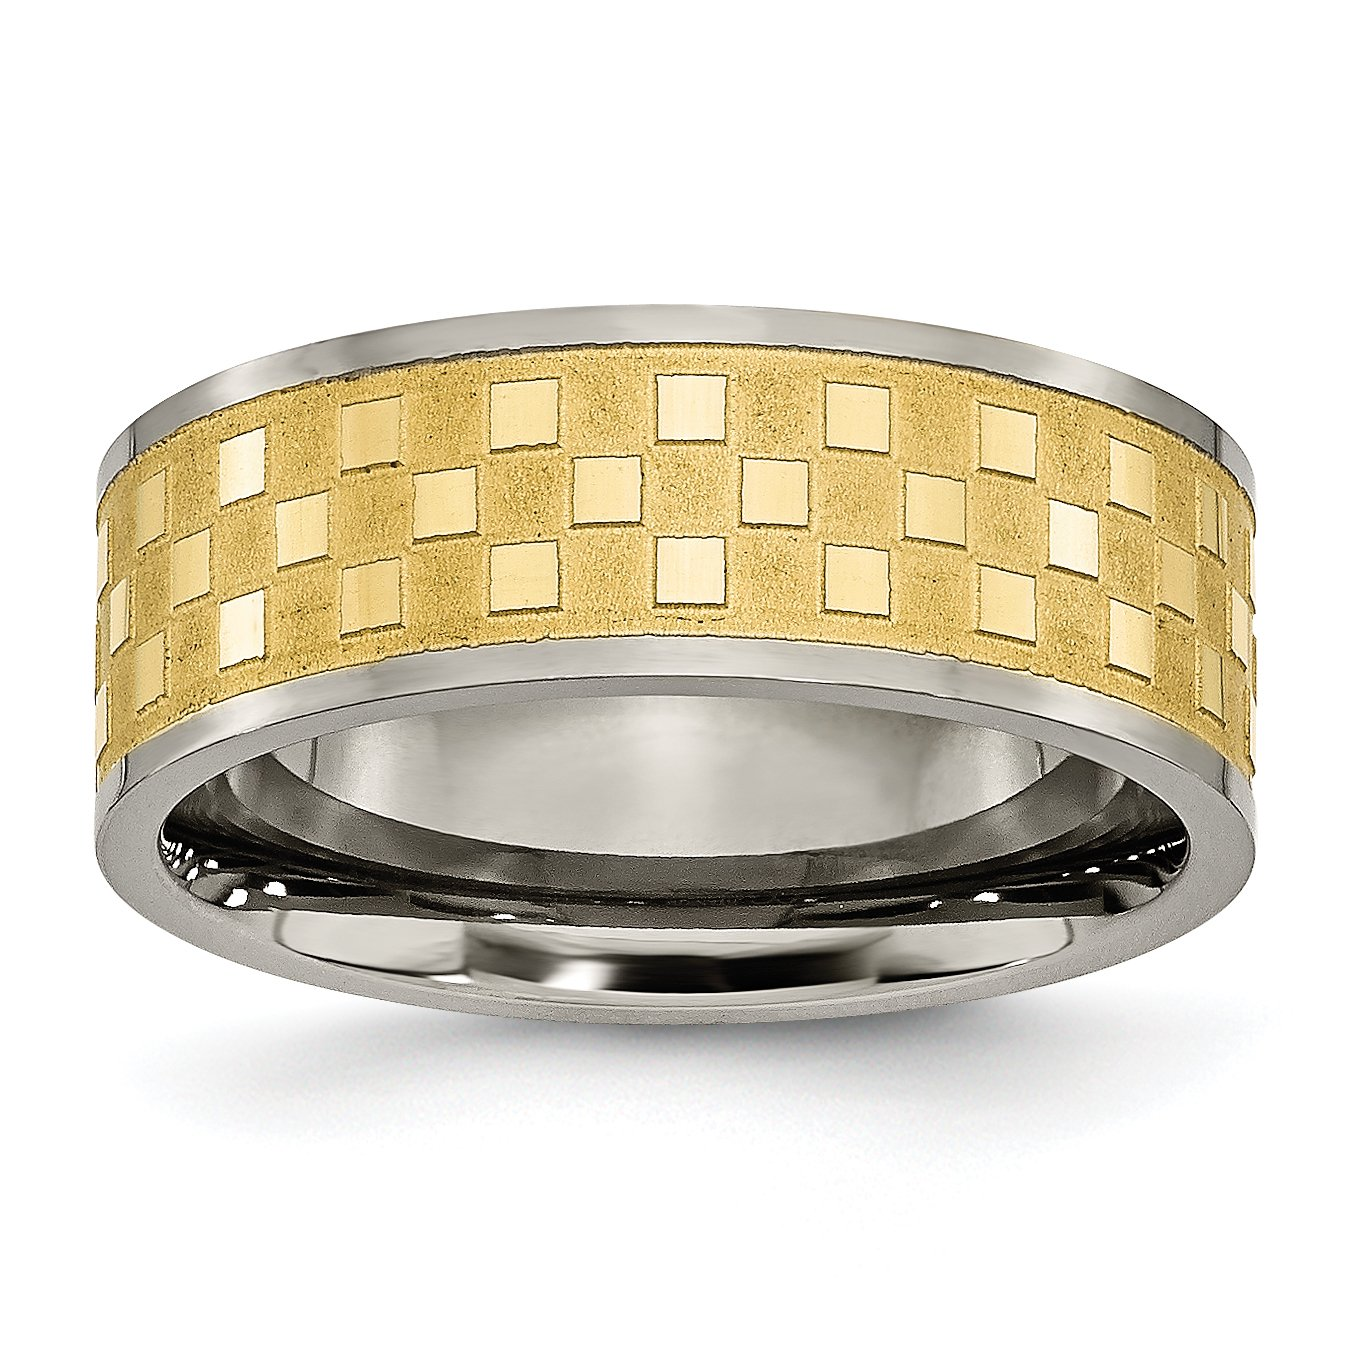 Grey Titanium Wedding Band Ring Polished Brushed Gold Tone IP-Plated 8 mm 8mm Yellow IP-plated Satin Checkered Band